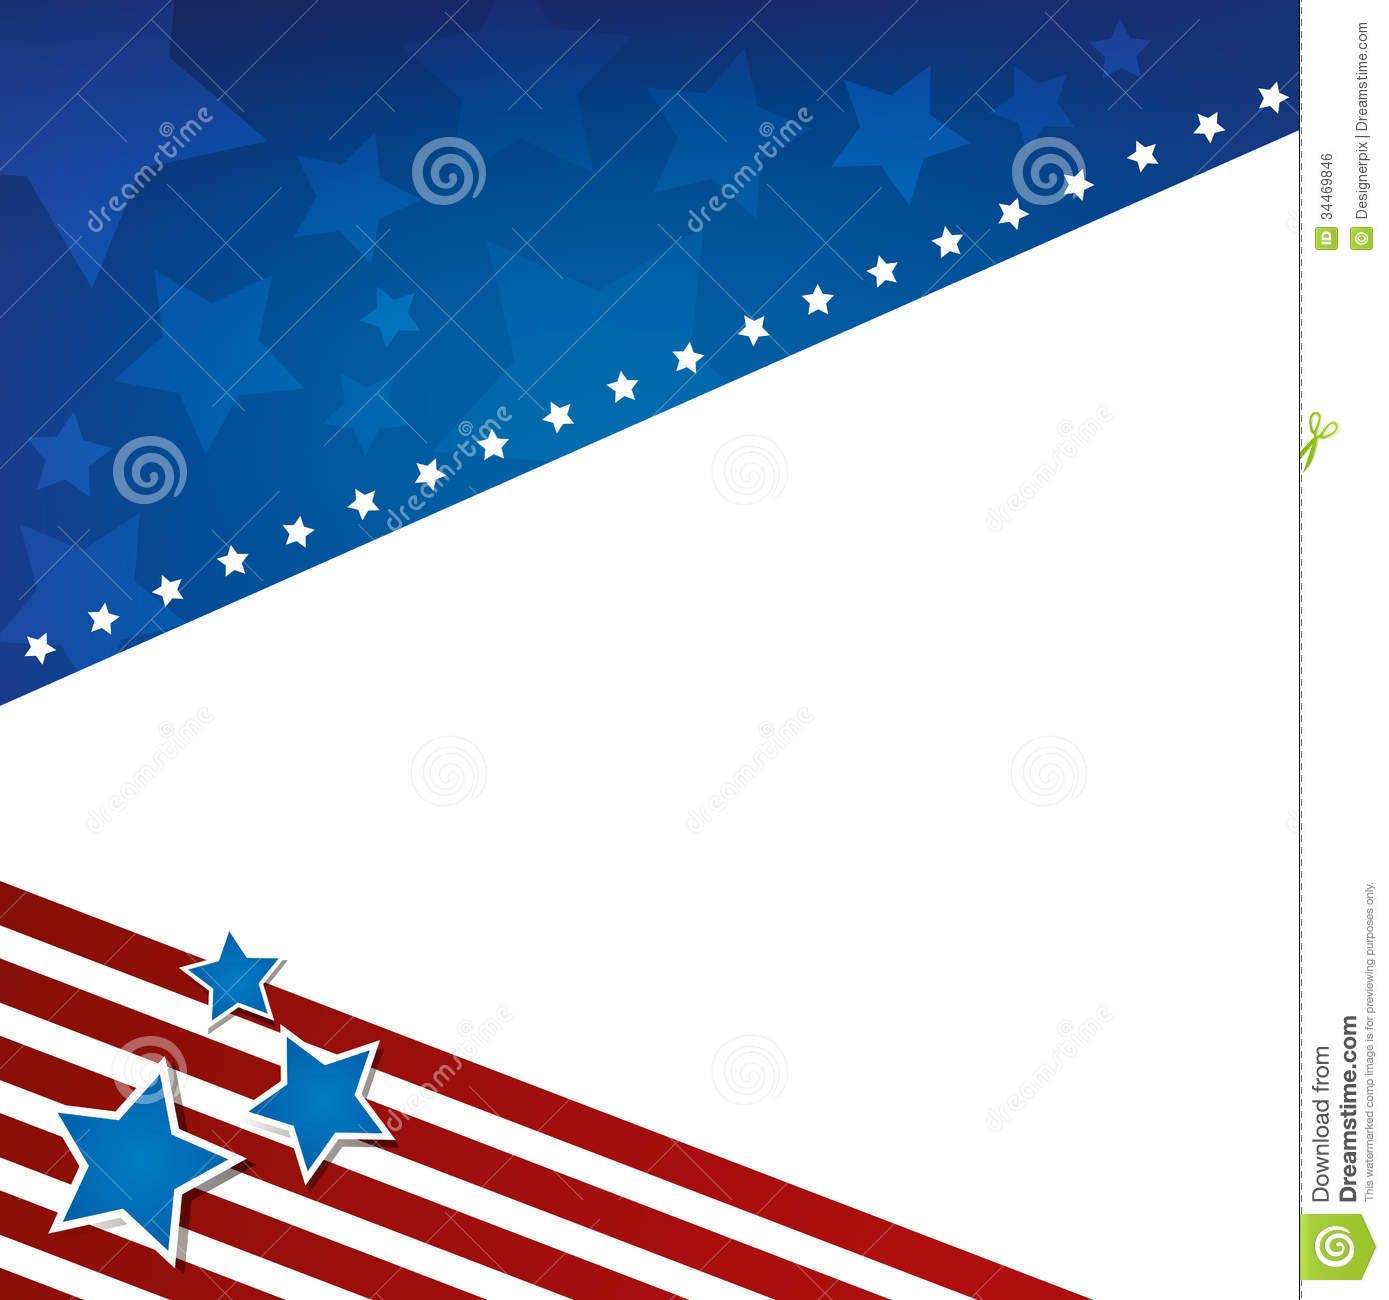 ... background design. Ideal for campaign or 4th of July themed designs